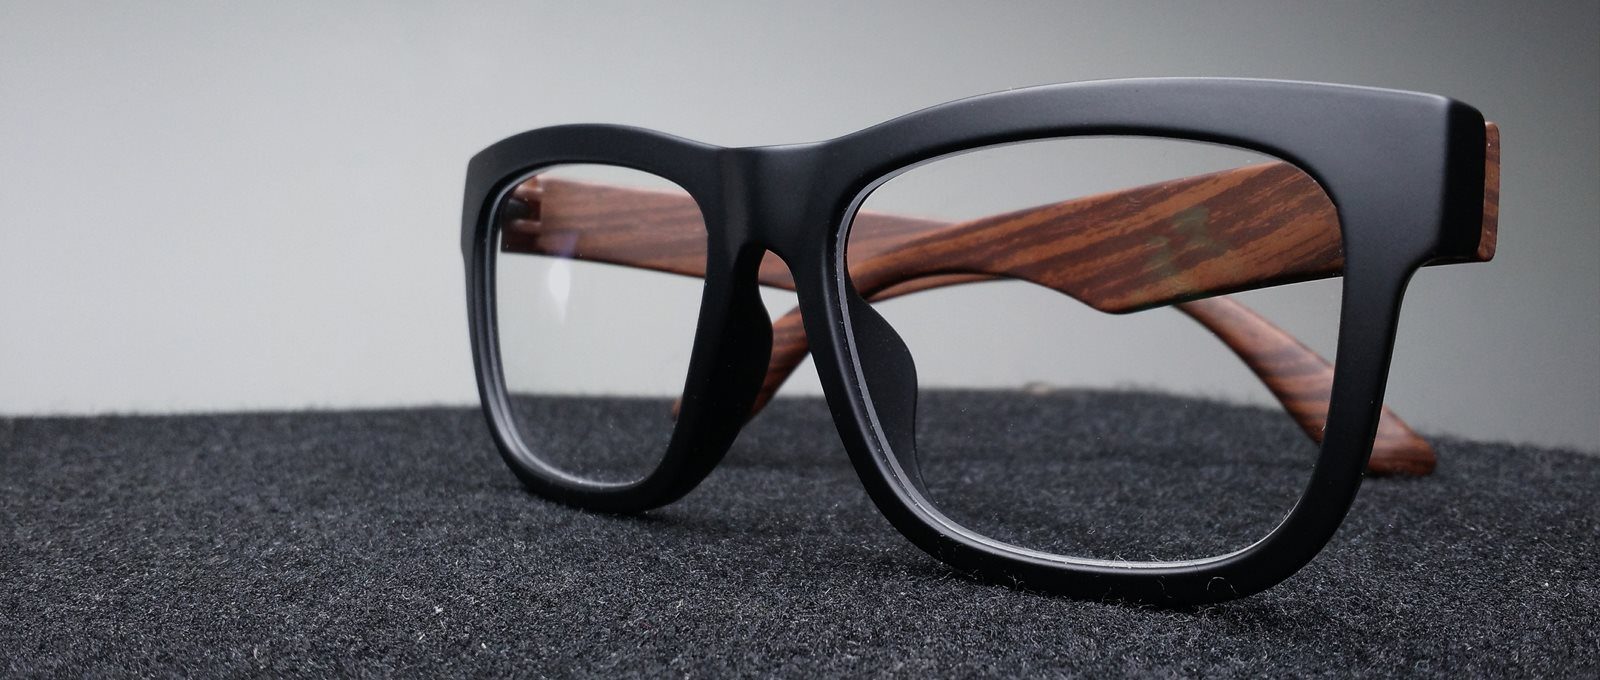 Close Up Of Spectacles With Dark Frames